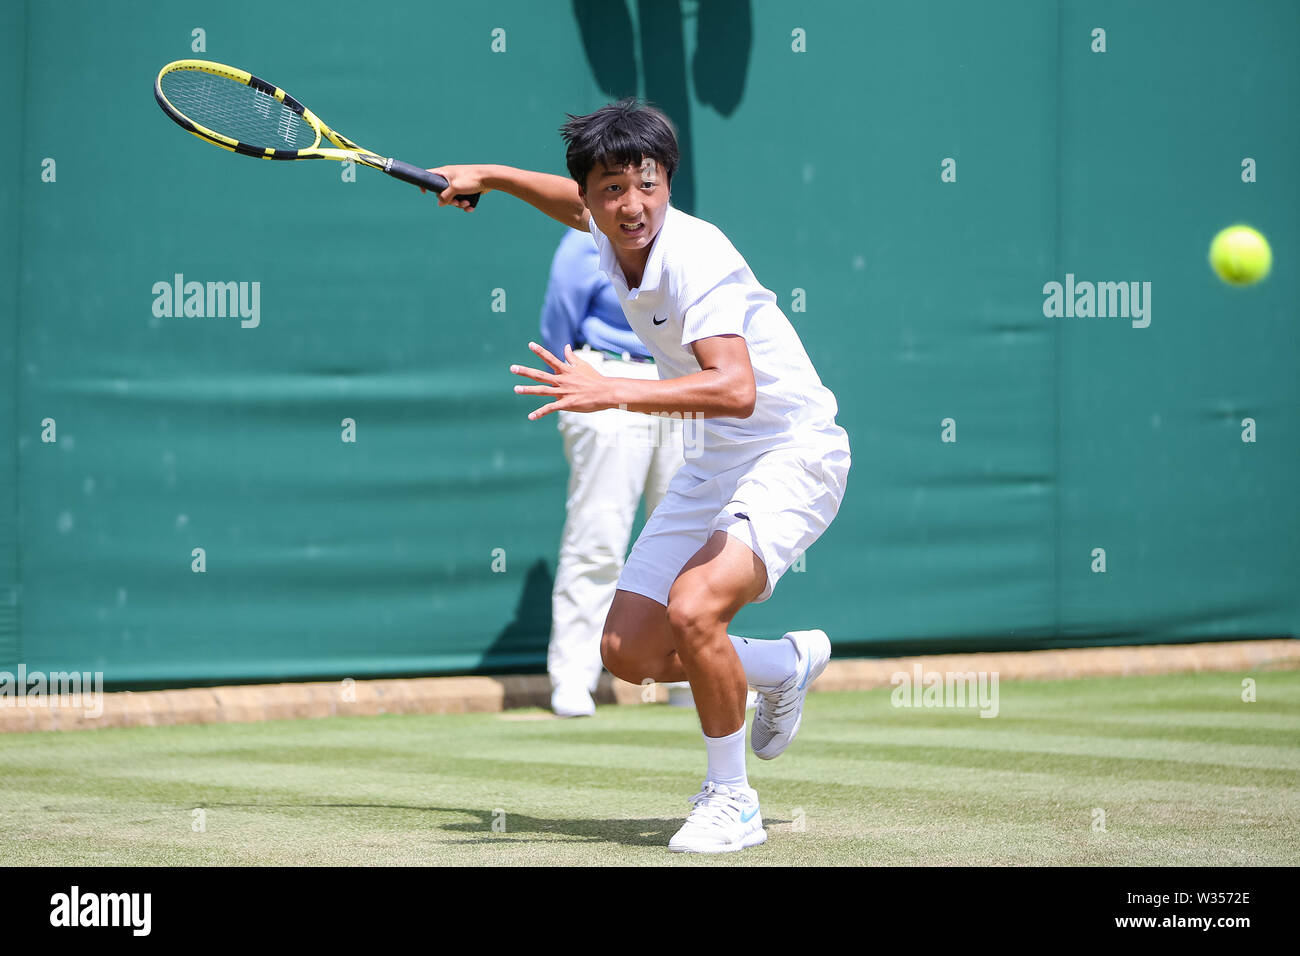 Wimbledon, London, UK. 12th July 2019. Wimbledon, London, UK. 12th July 2019.Shintaro Mochizuki of Japan during the boy's singles semi-final match of the Wimbledon Lawn Tennis Championships against Martin Damm of the United States at the All England Lawn Tennis and Croquet Club in London, England on July 12, 2019. Credit: AFLO/Alamy Live News Stock Photo